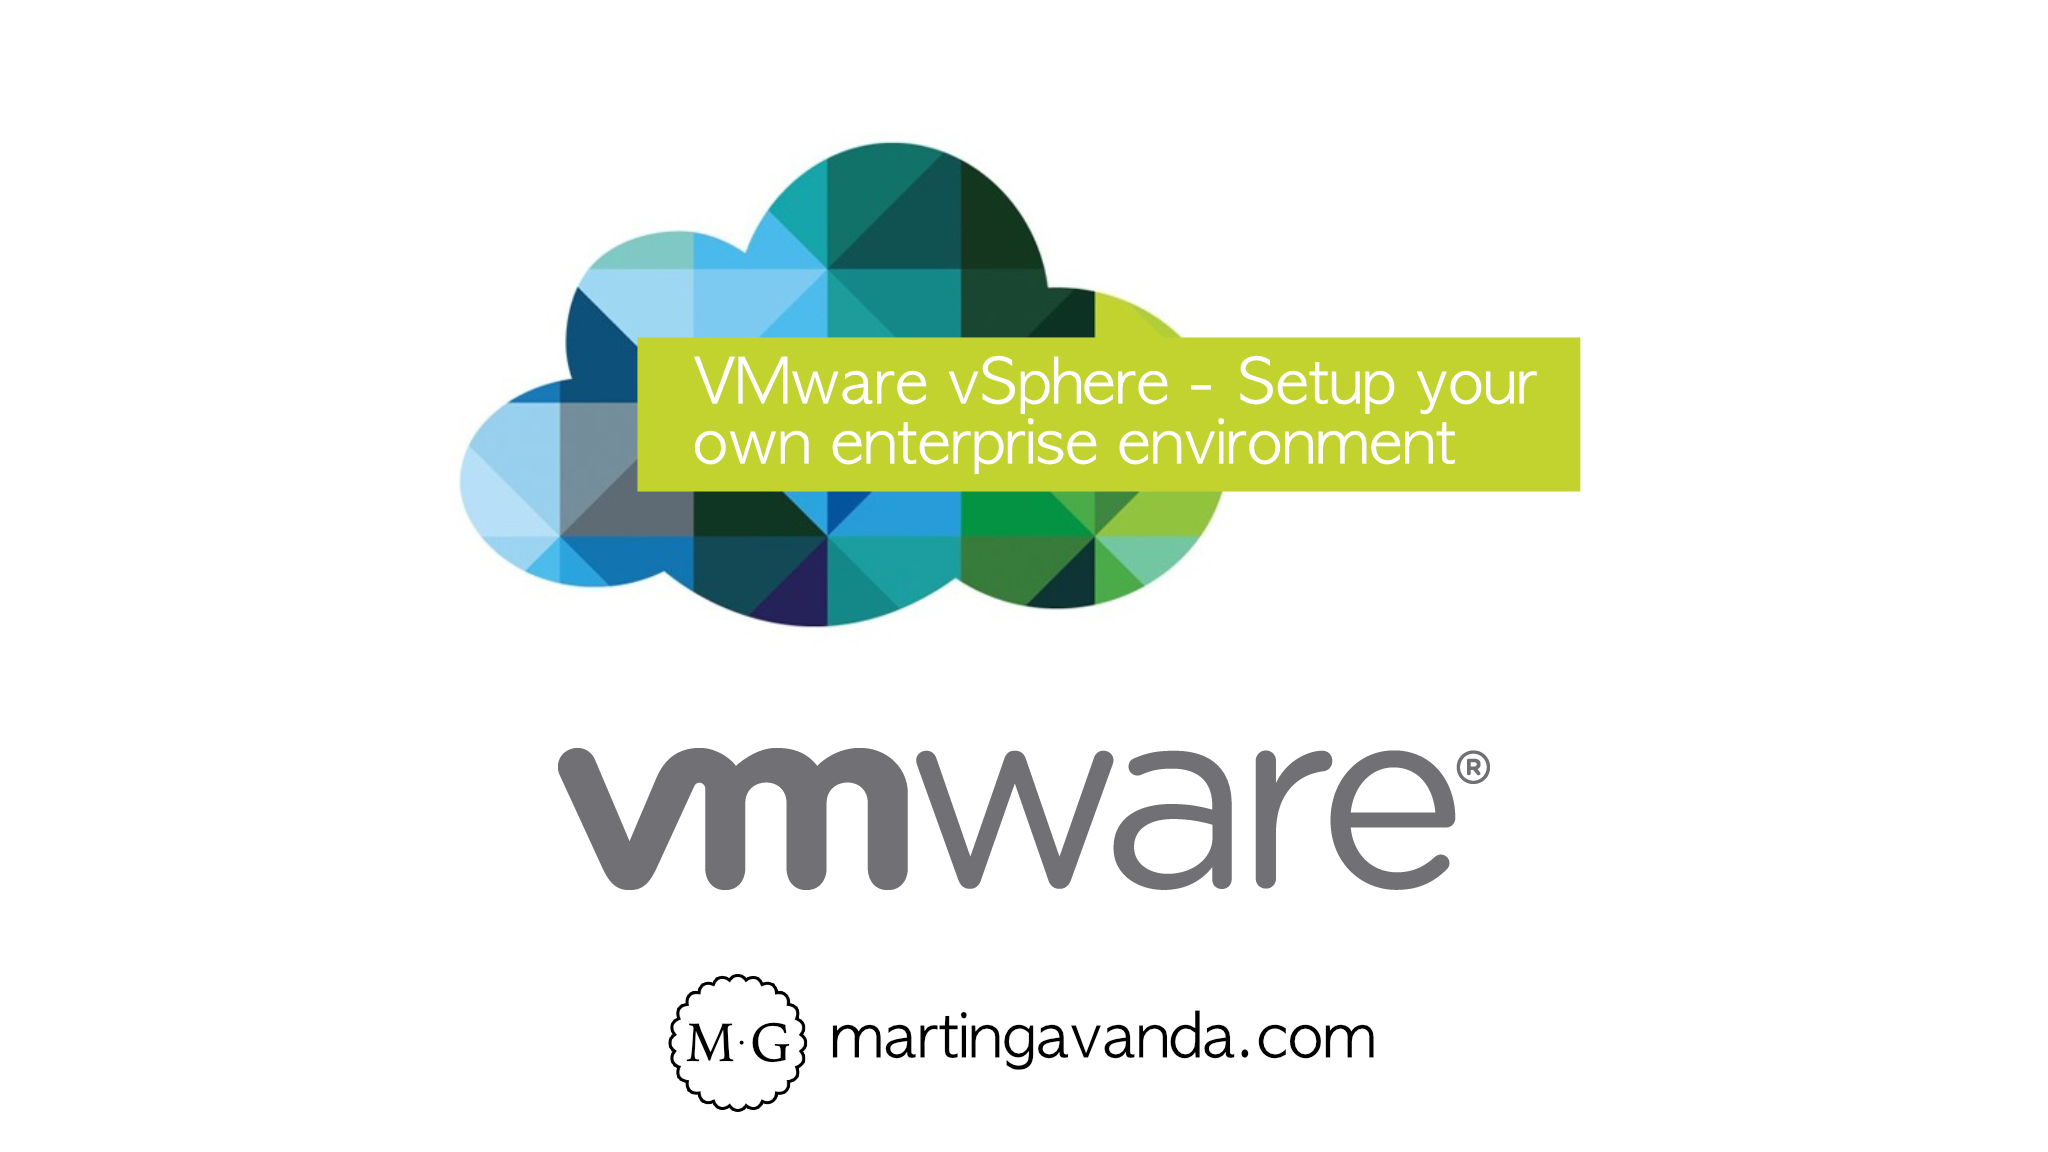 VMware vSphere 6.5 - Setup your own enterprise environment